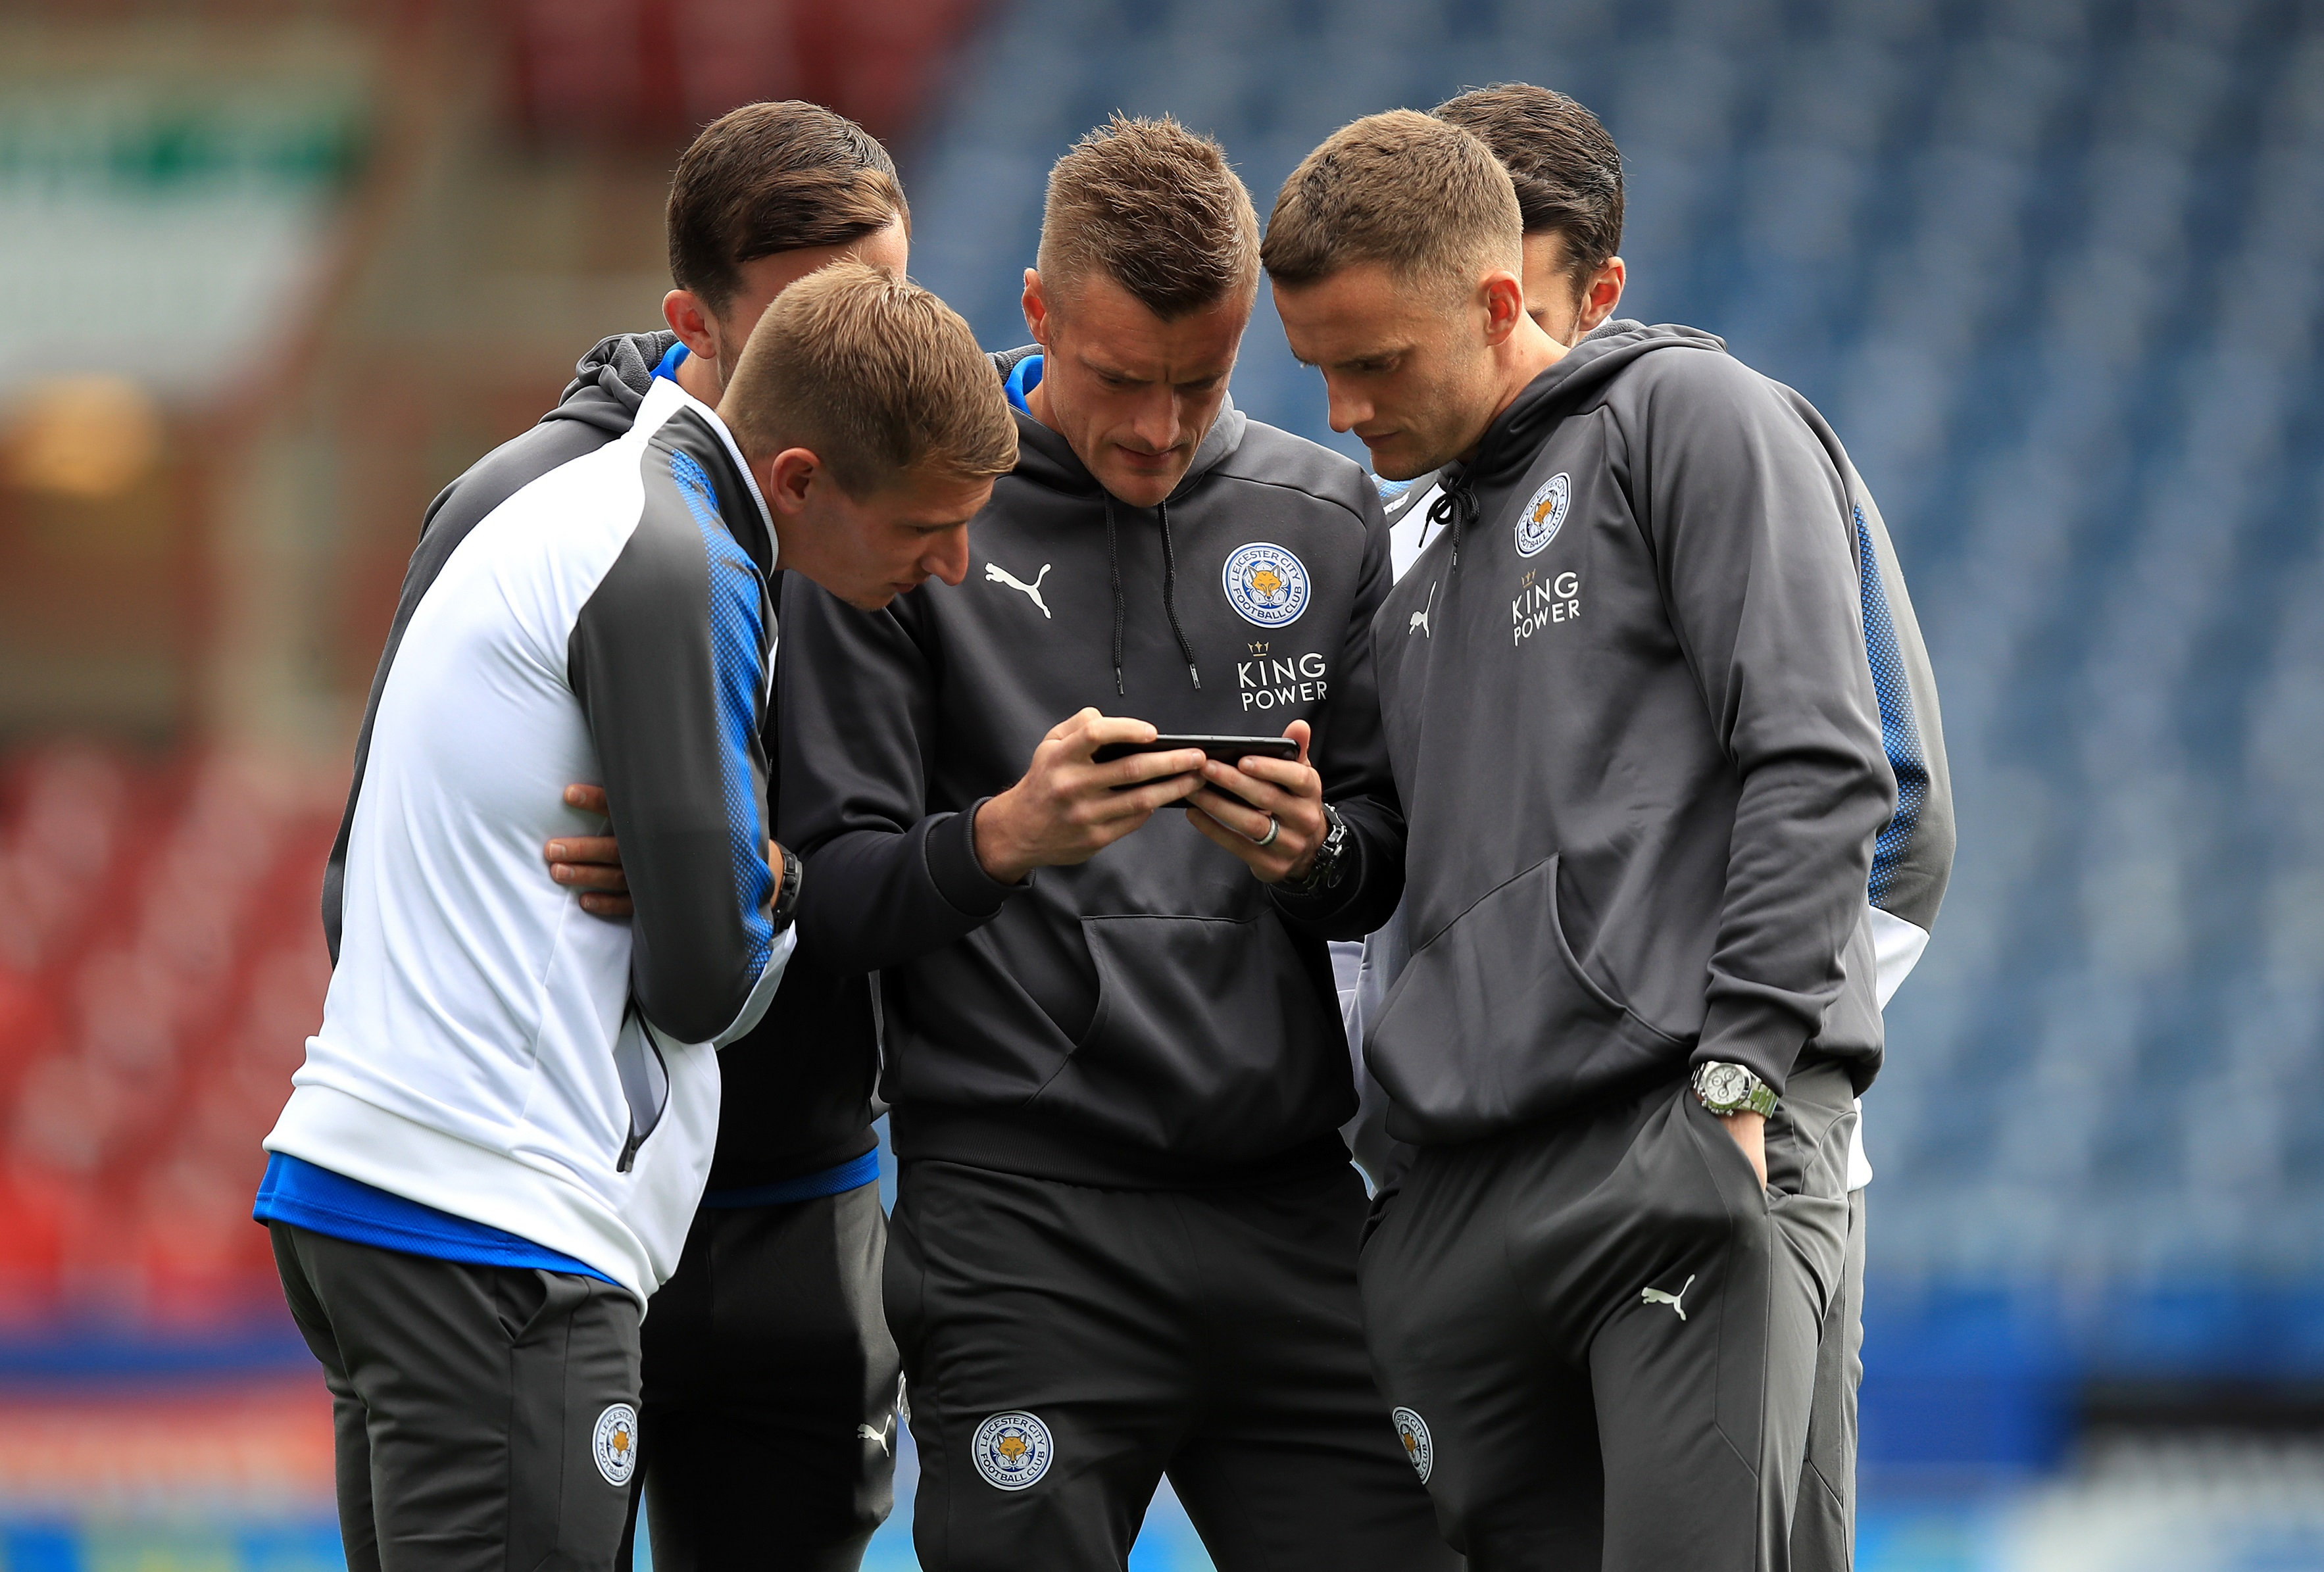 Jamie Vardy and his Leicester team mates look at a phone